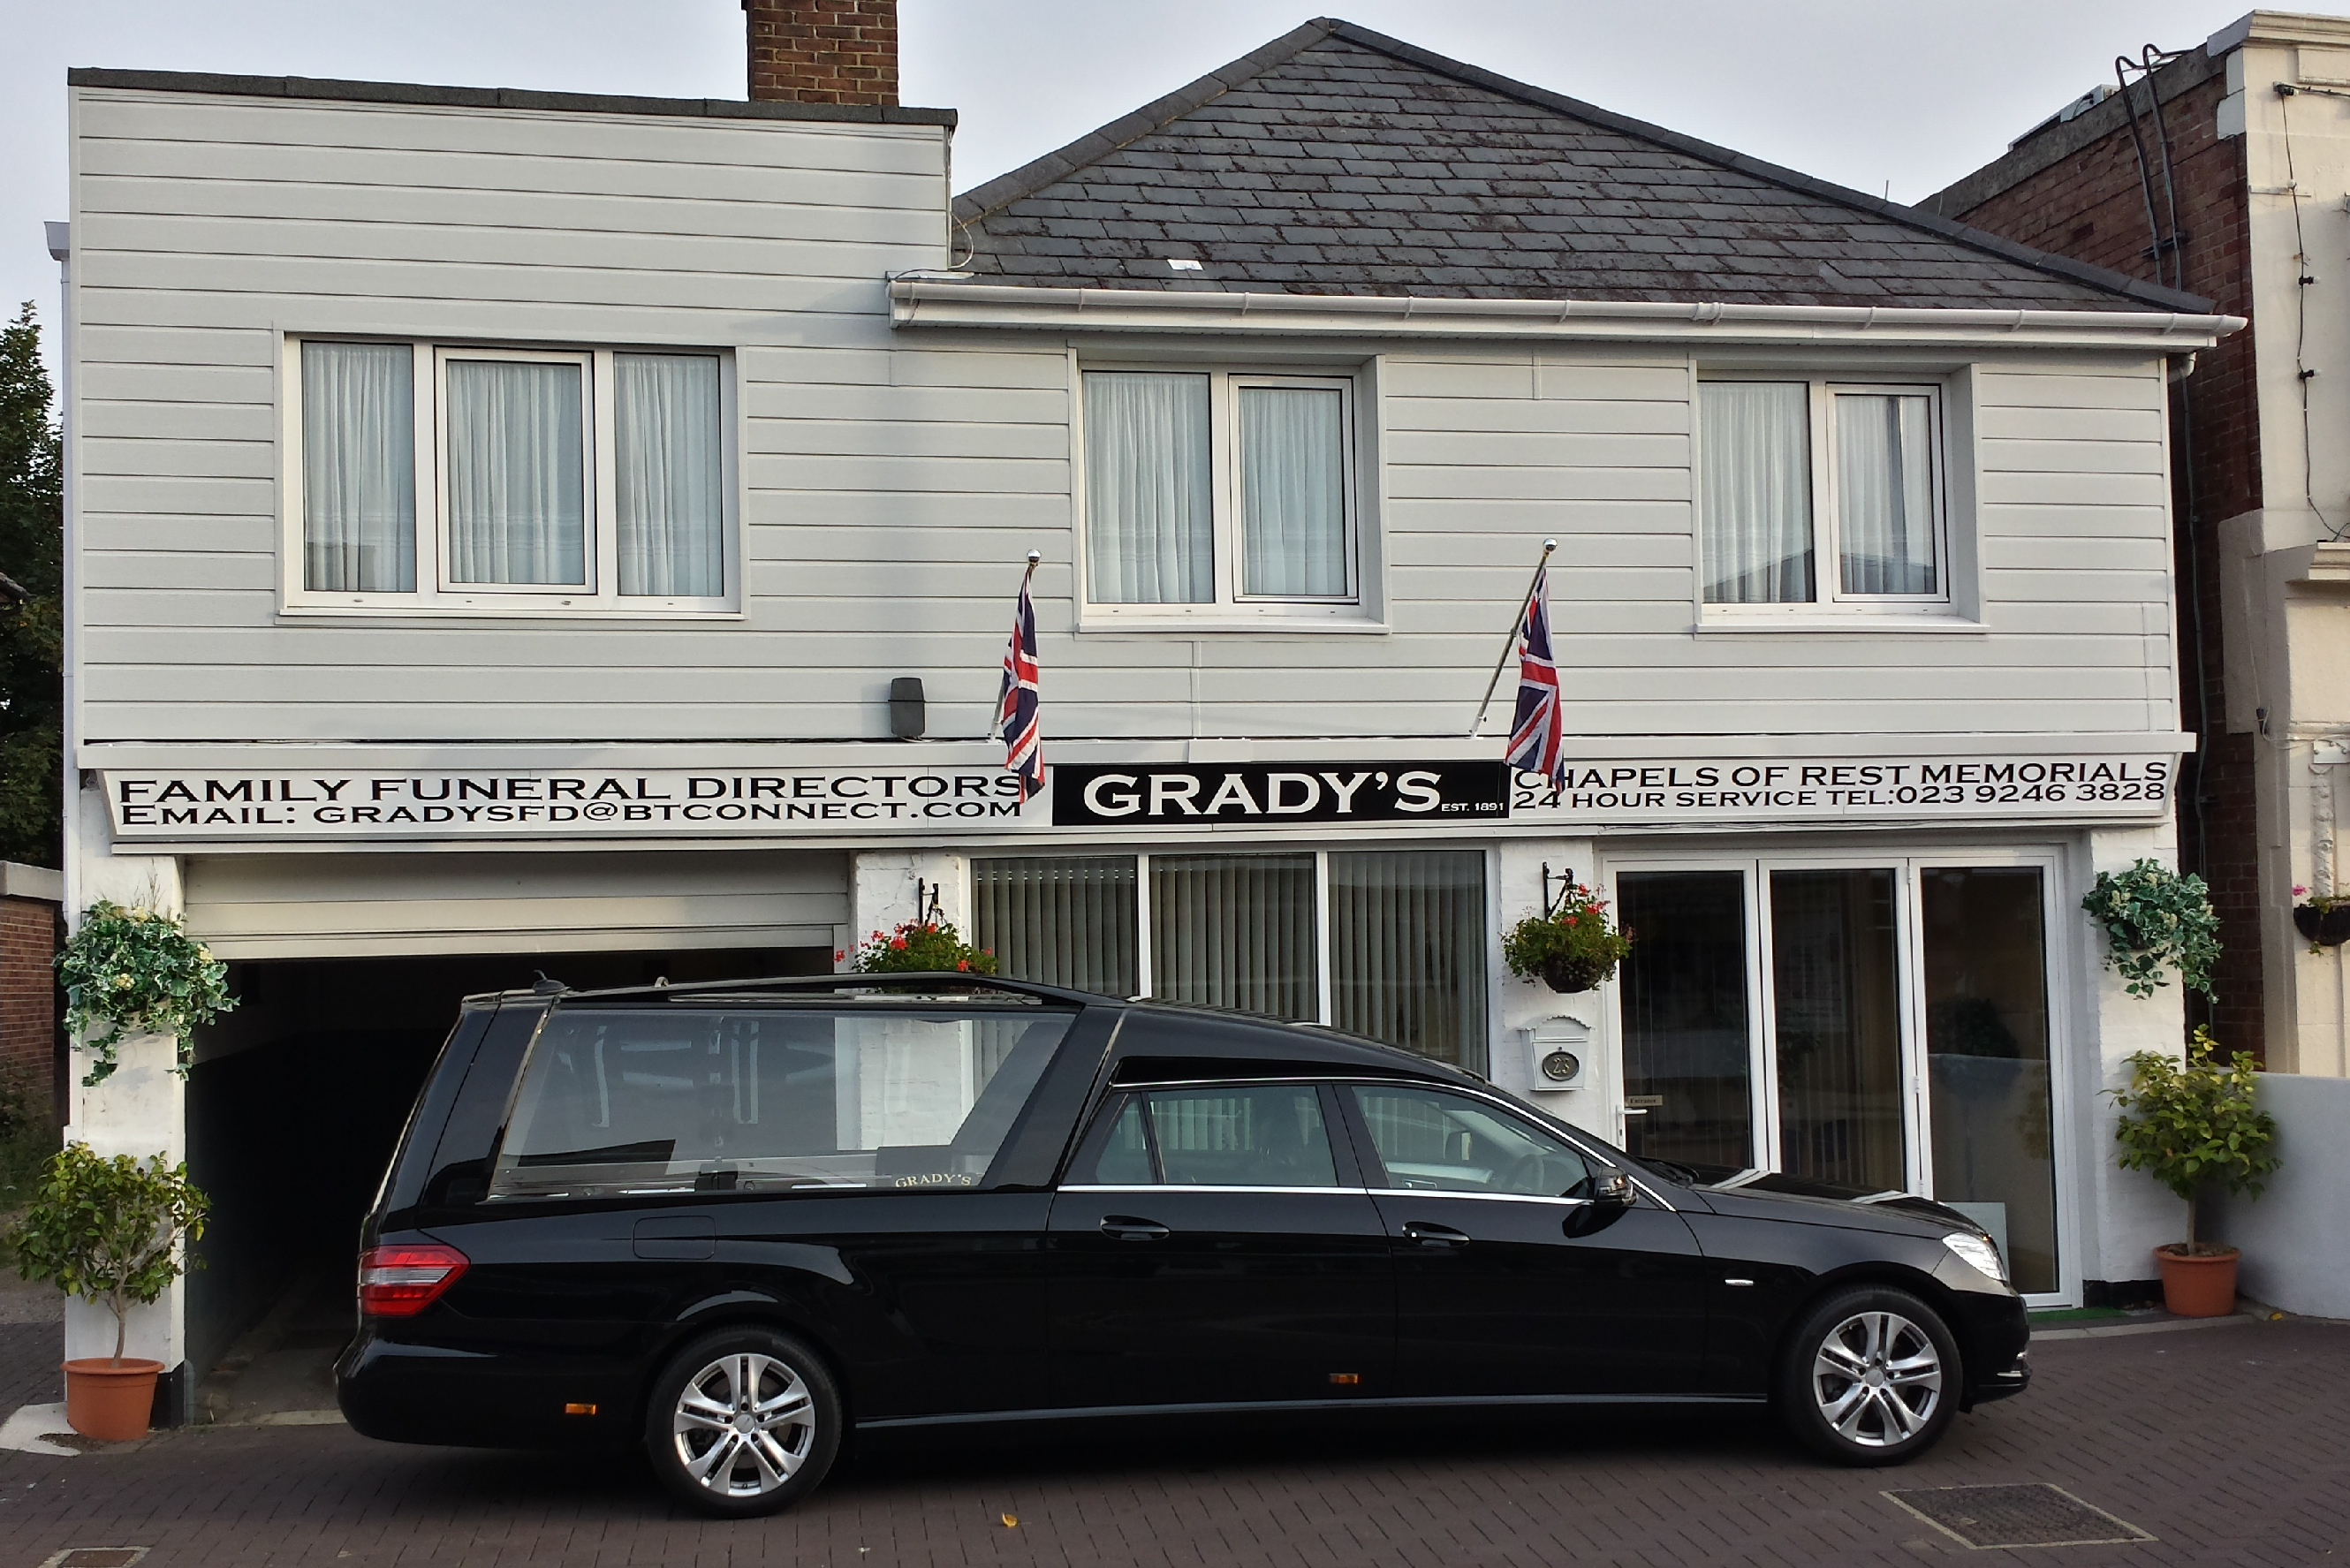 Why Grady's Funeral Directors chose Superior UK as funeral vehicle supplier